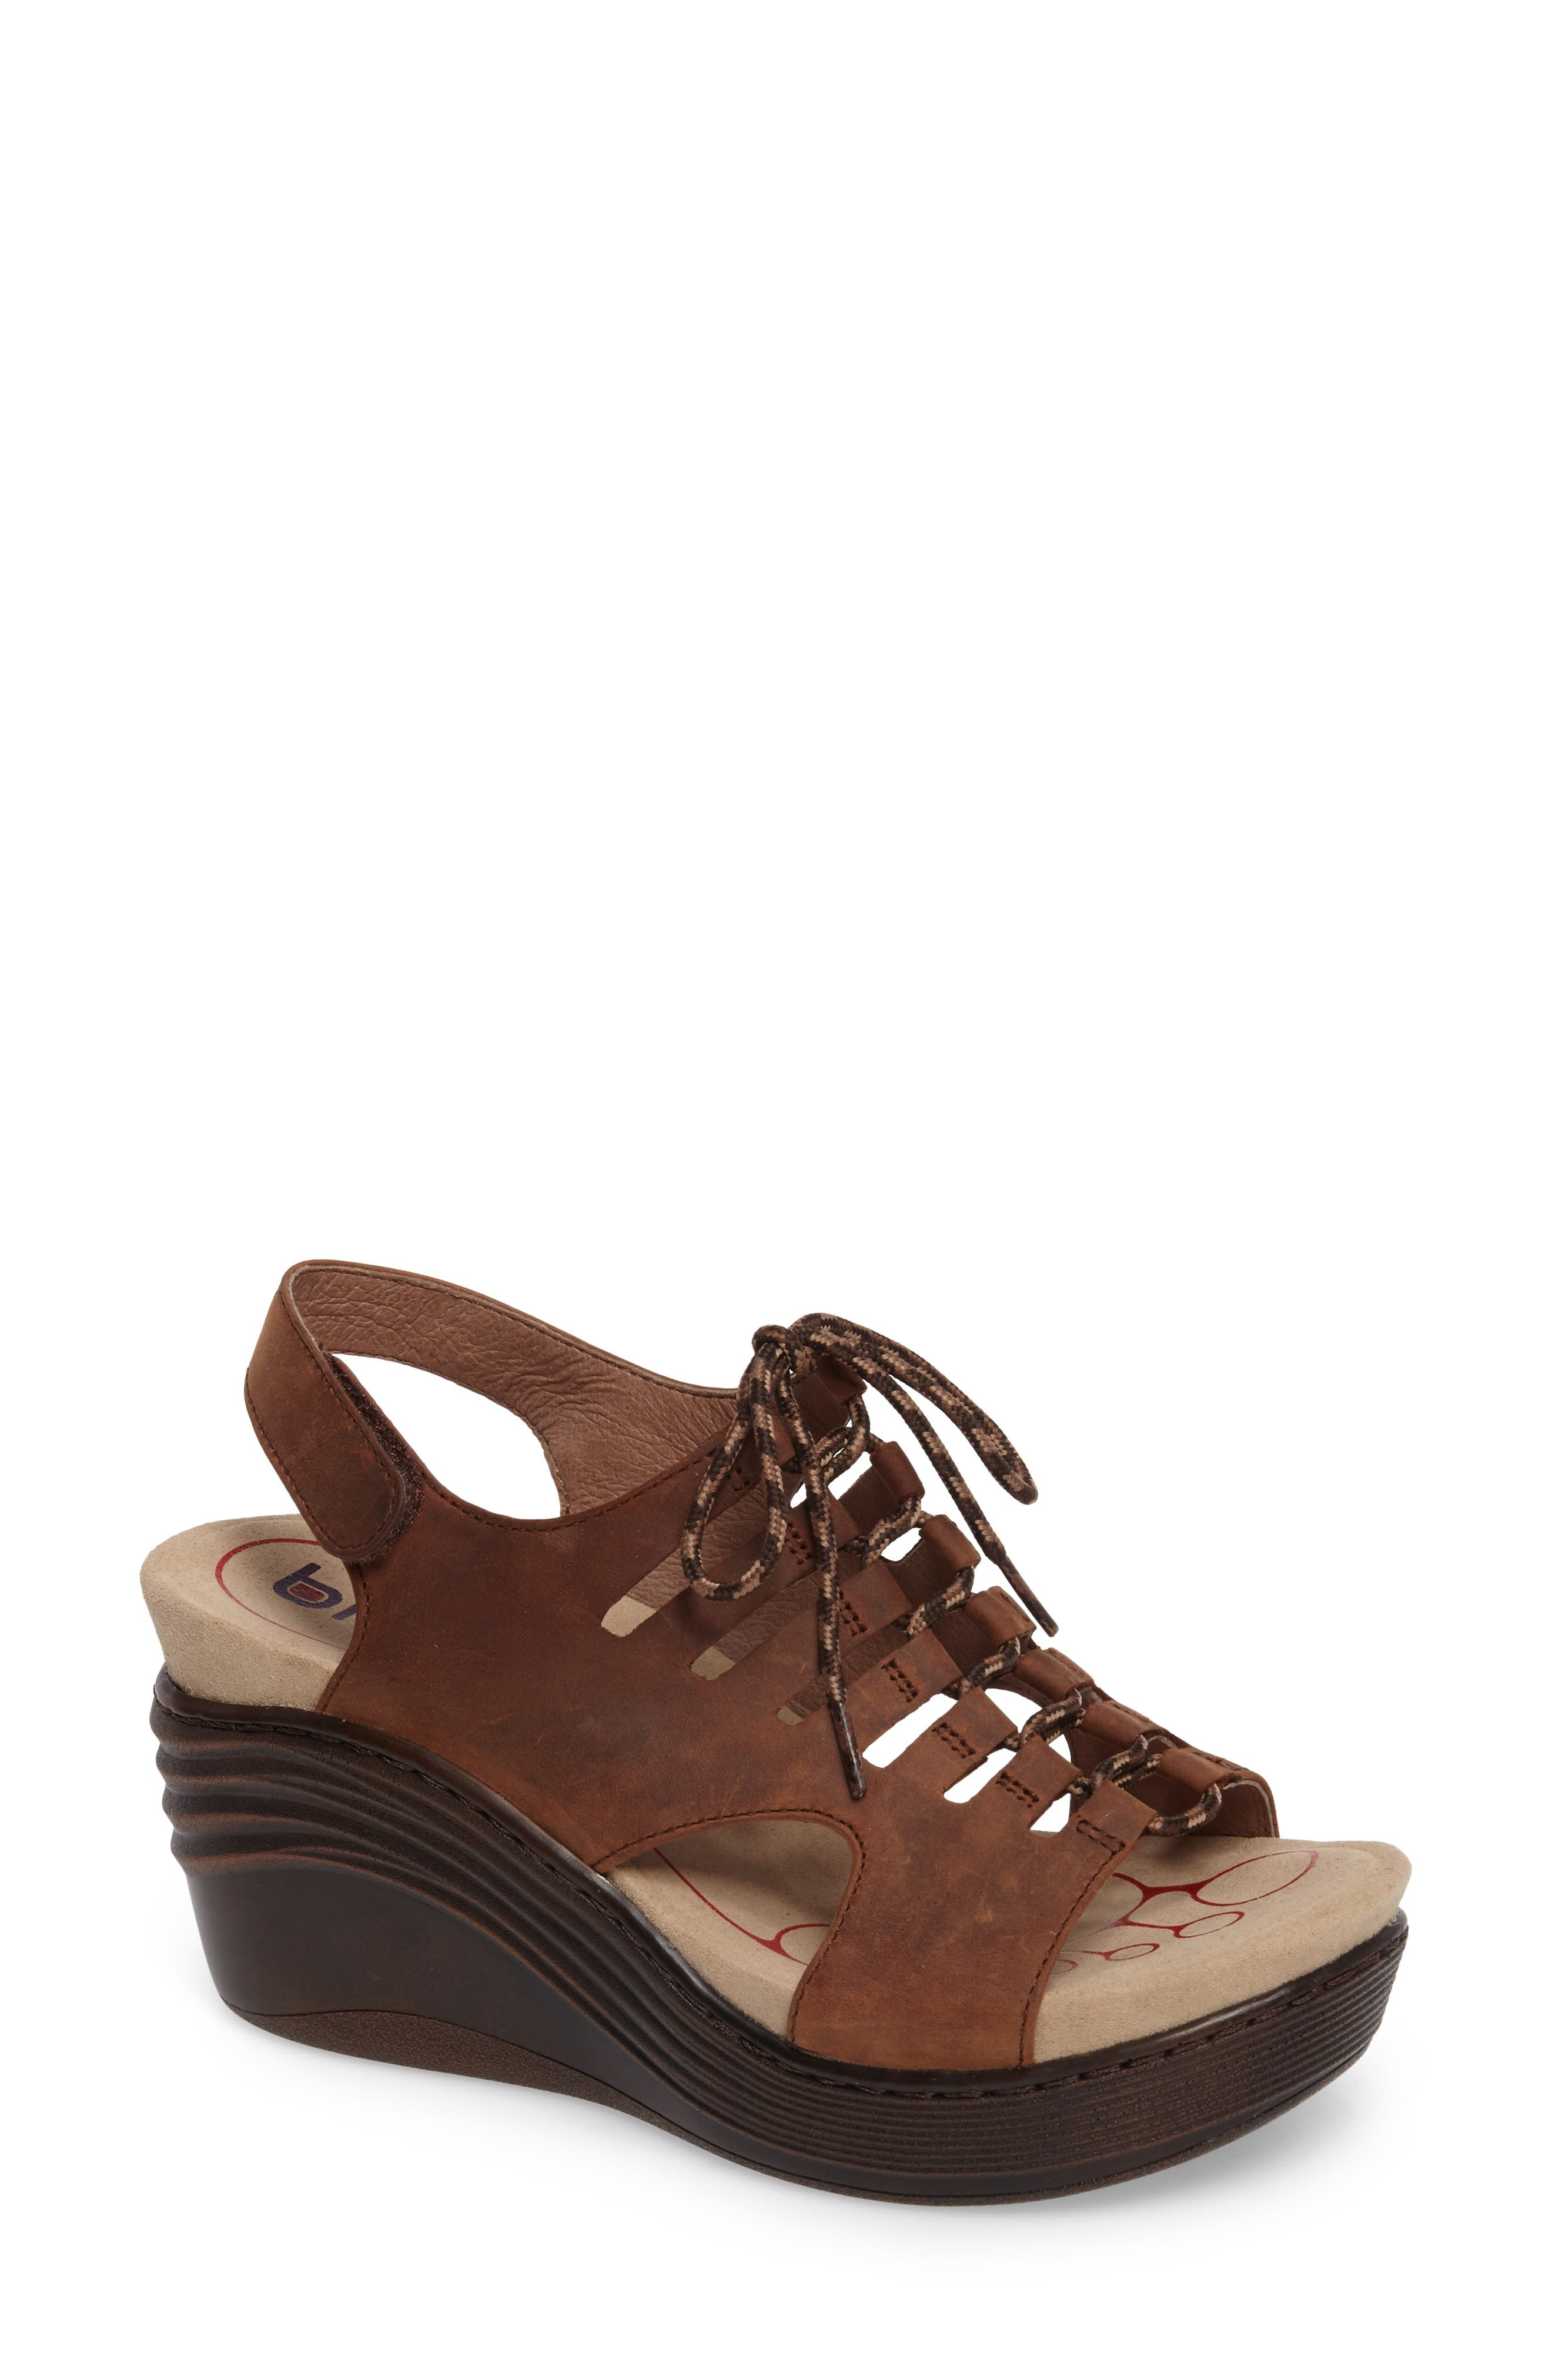 Sirus Wedge Sandal,                         Main,                         color, Aztec Brown Leather